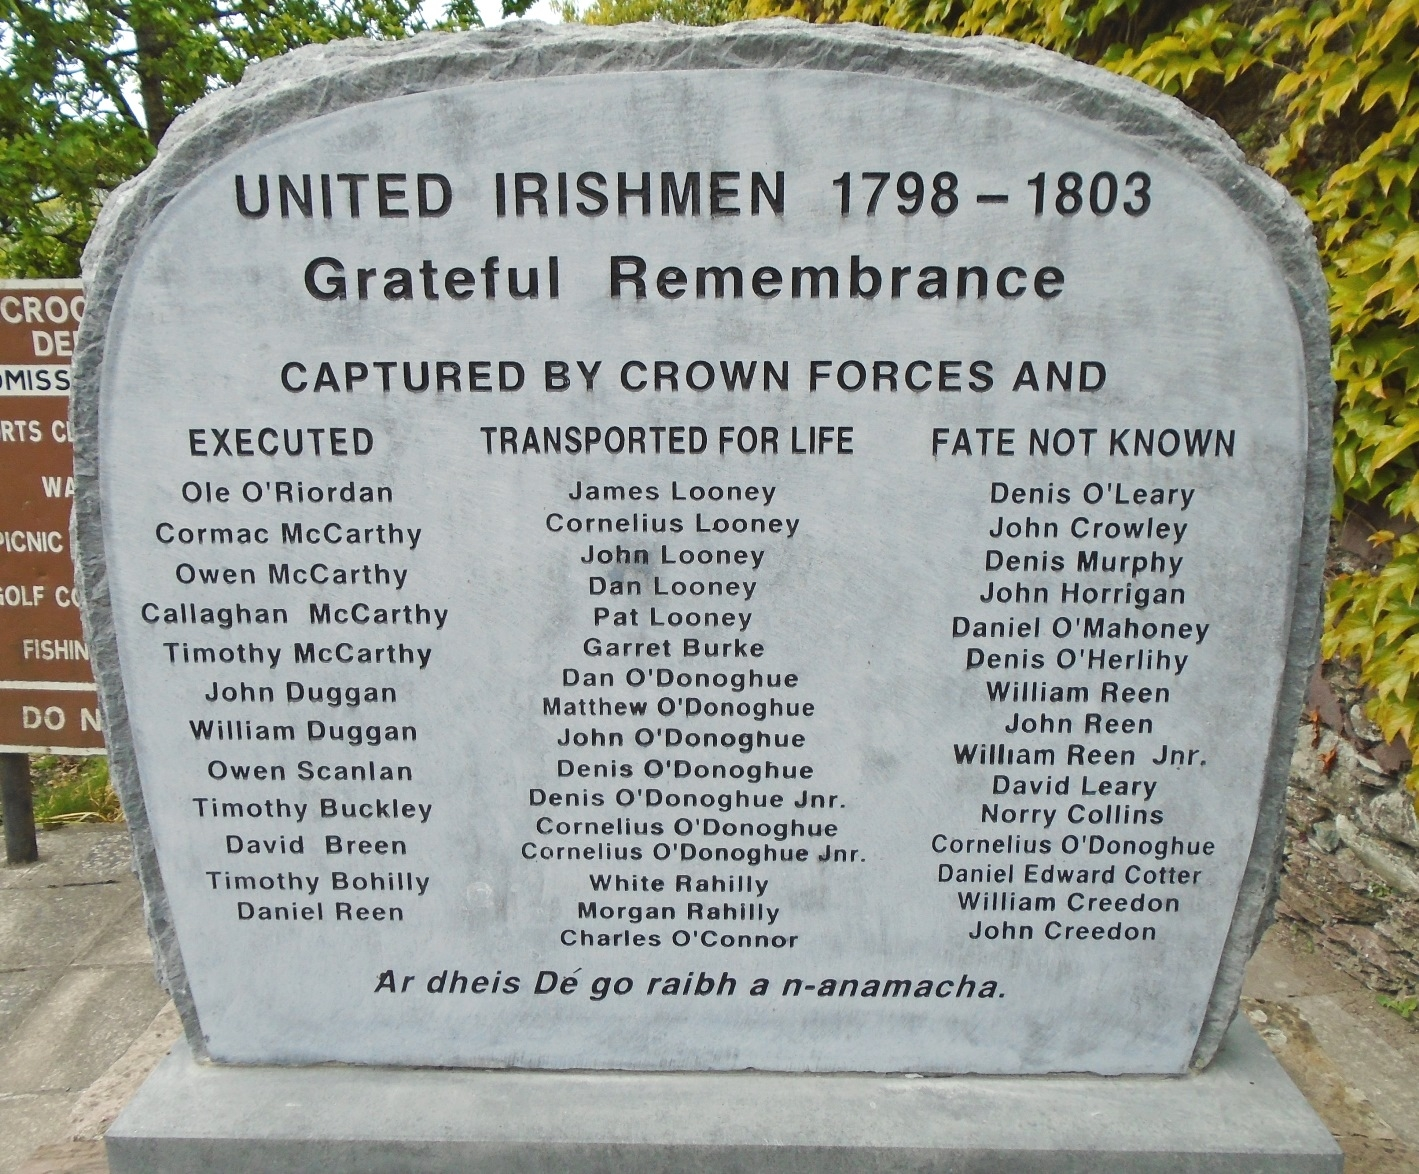 United Irishmen 1798 - 1803 Marker